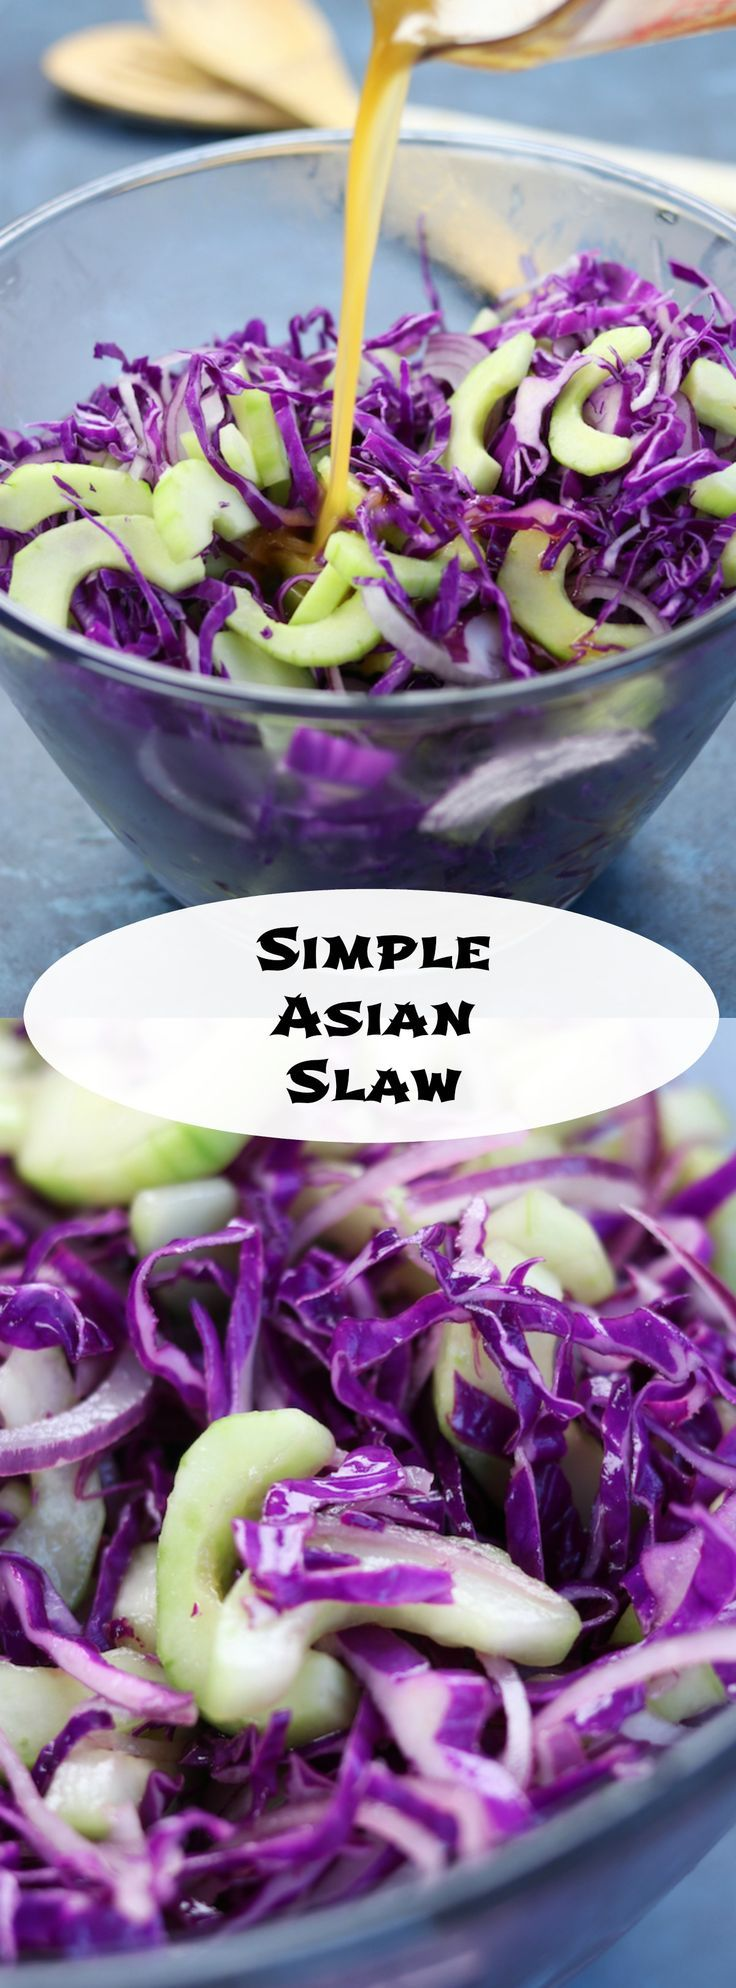 This Simple Asian Slaw recipe is a crispy and refreshing companion to many asian dishes. Comes together in minutes and disappears almost as fast. Such a fun way to eat your veggies. http://www.thefedupfoodie.com